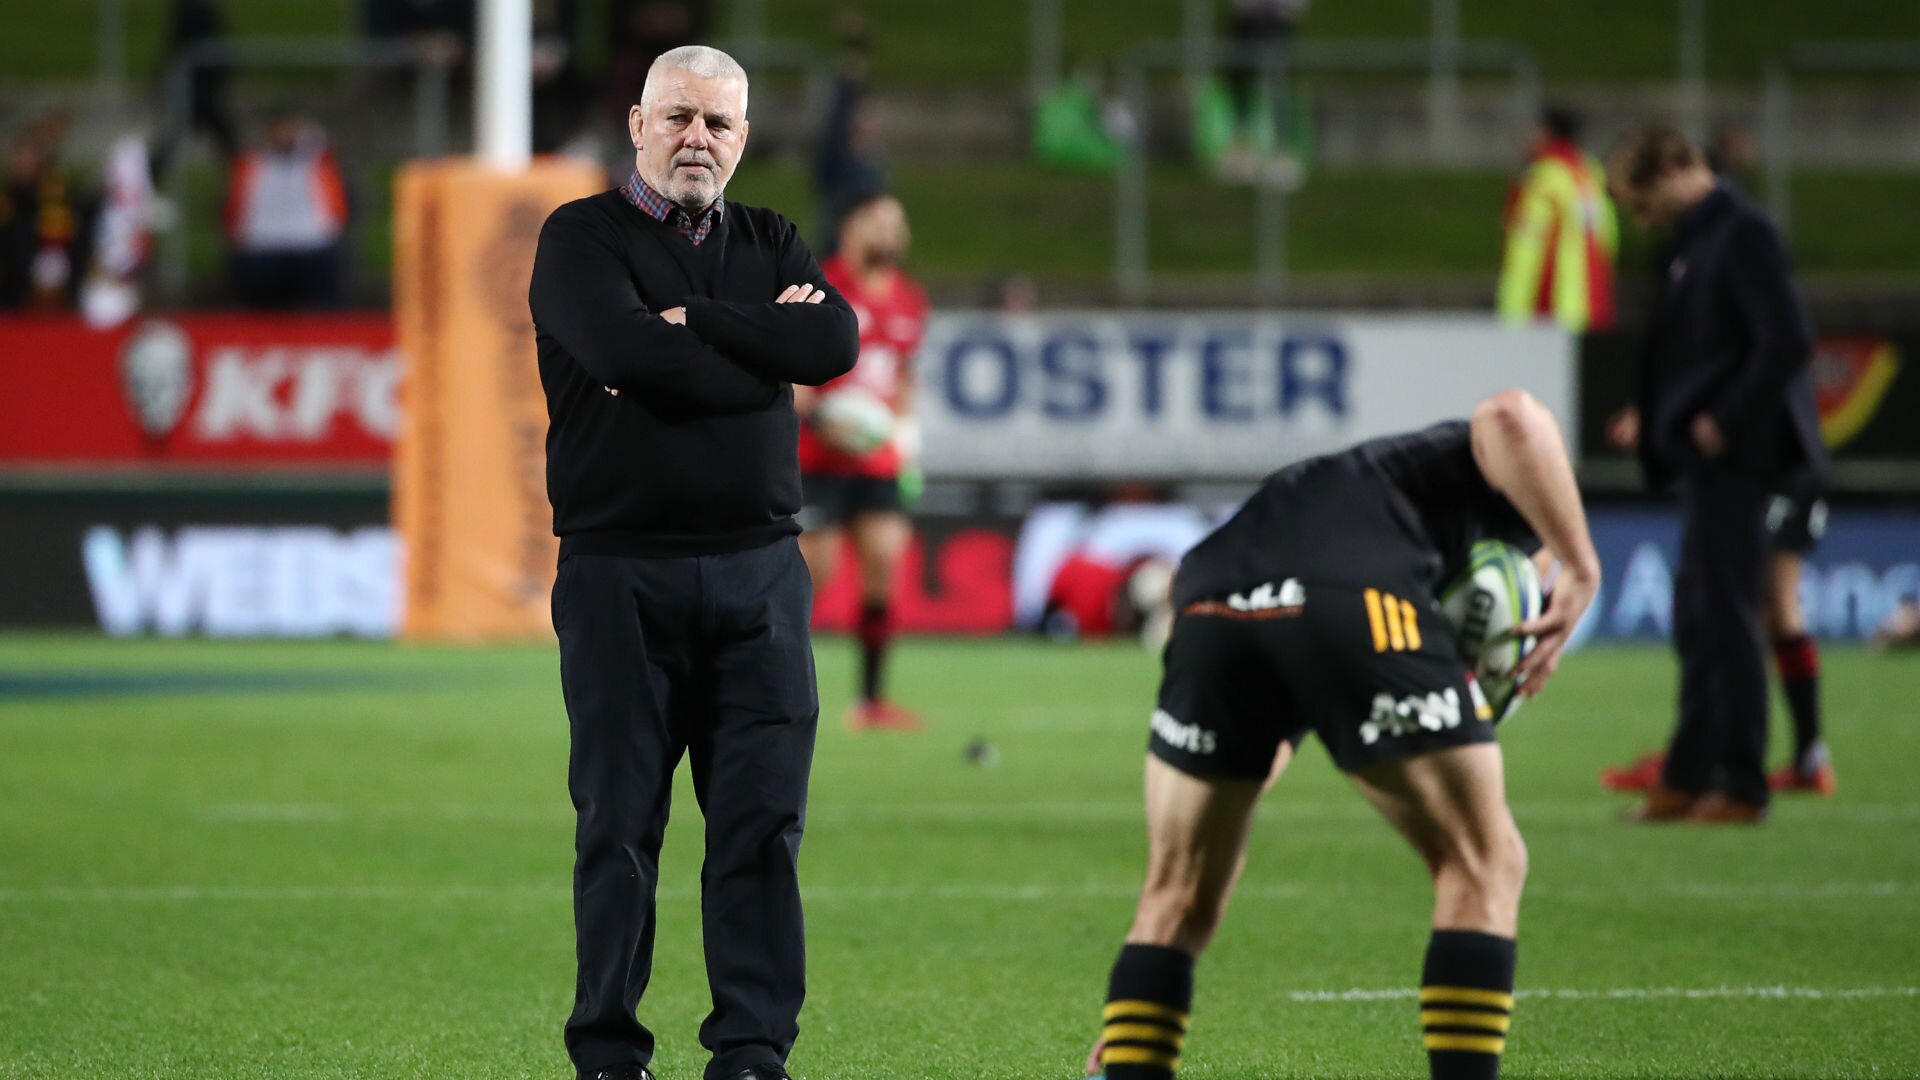 Why Warren Gatland and the Chiefs shouldn't get a free pass for their form in Super Rugby Aotearoa